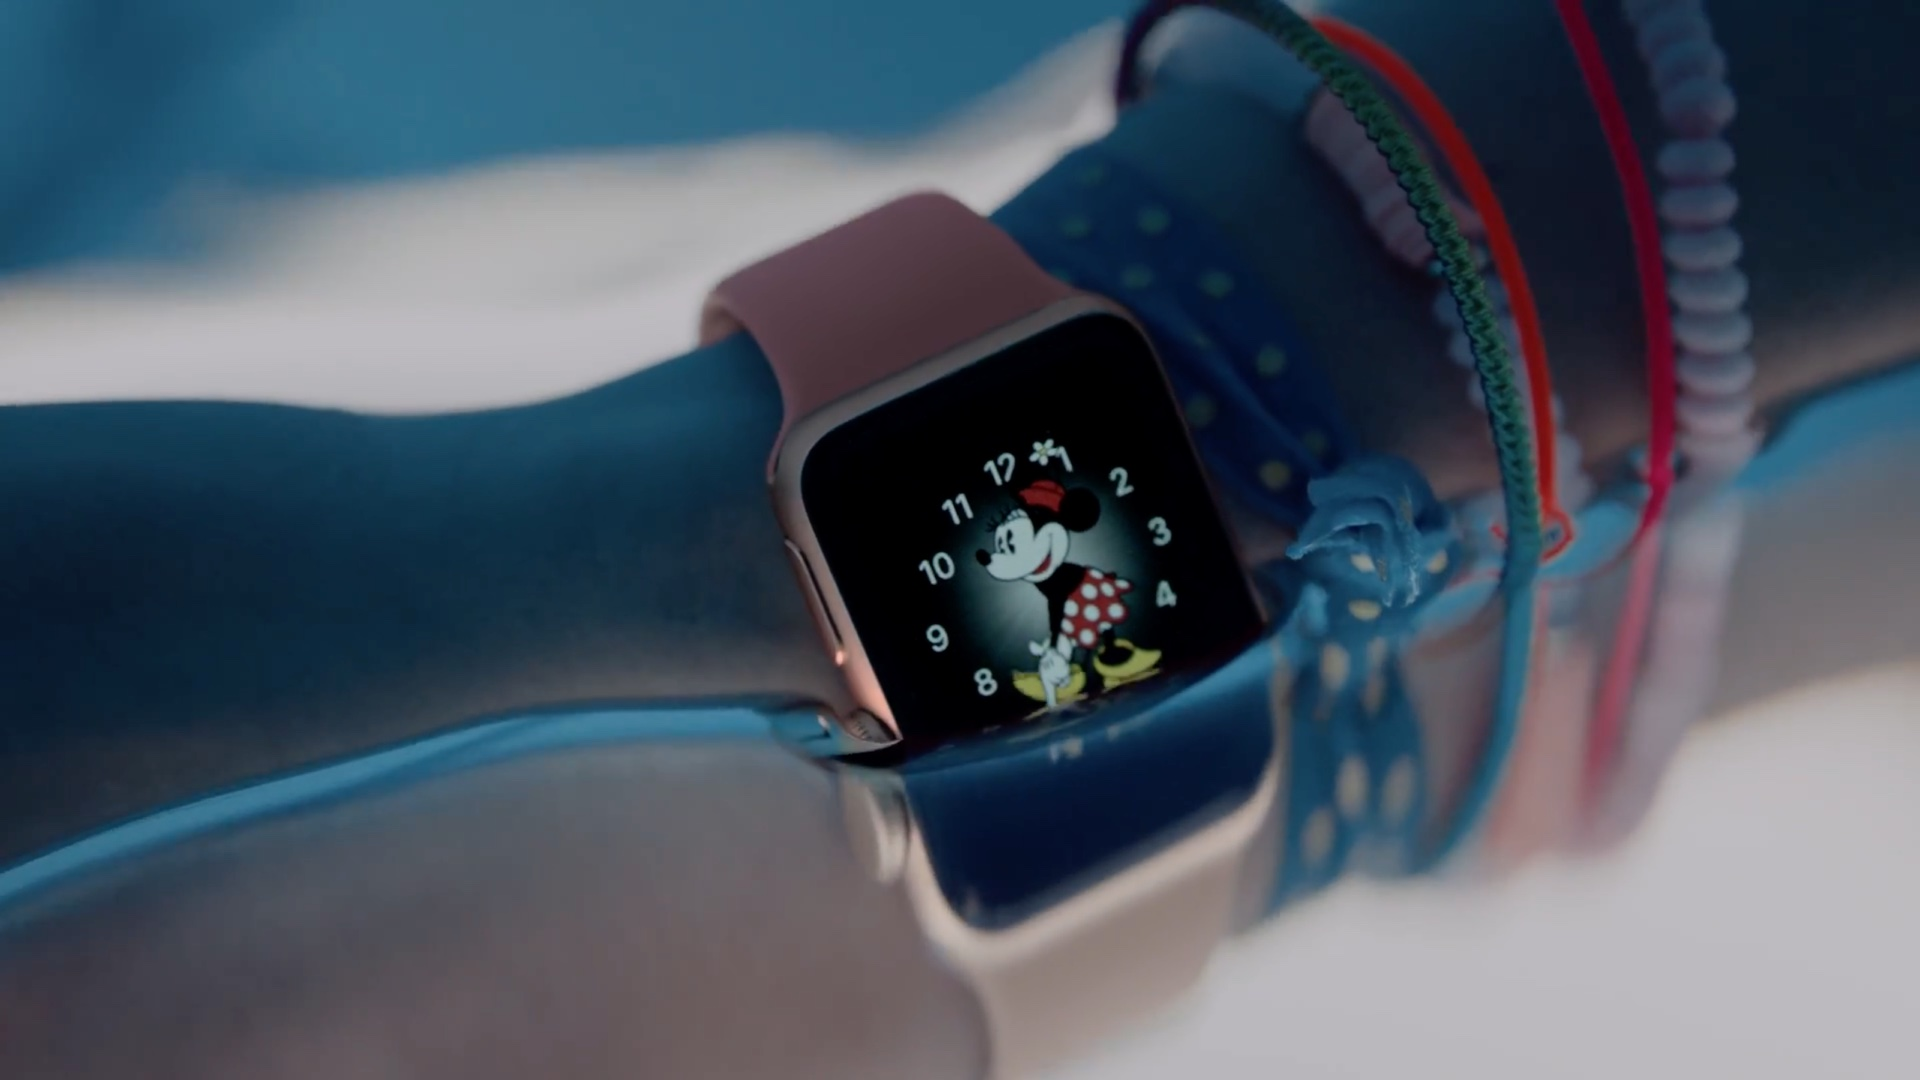 apple-watch-series-2-ad-image-003